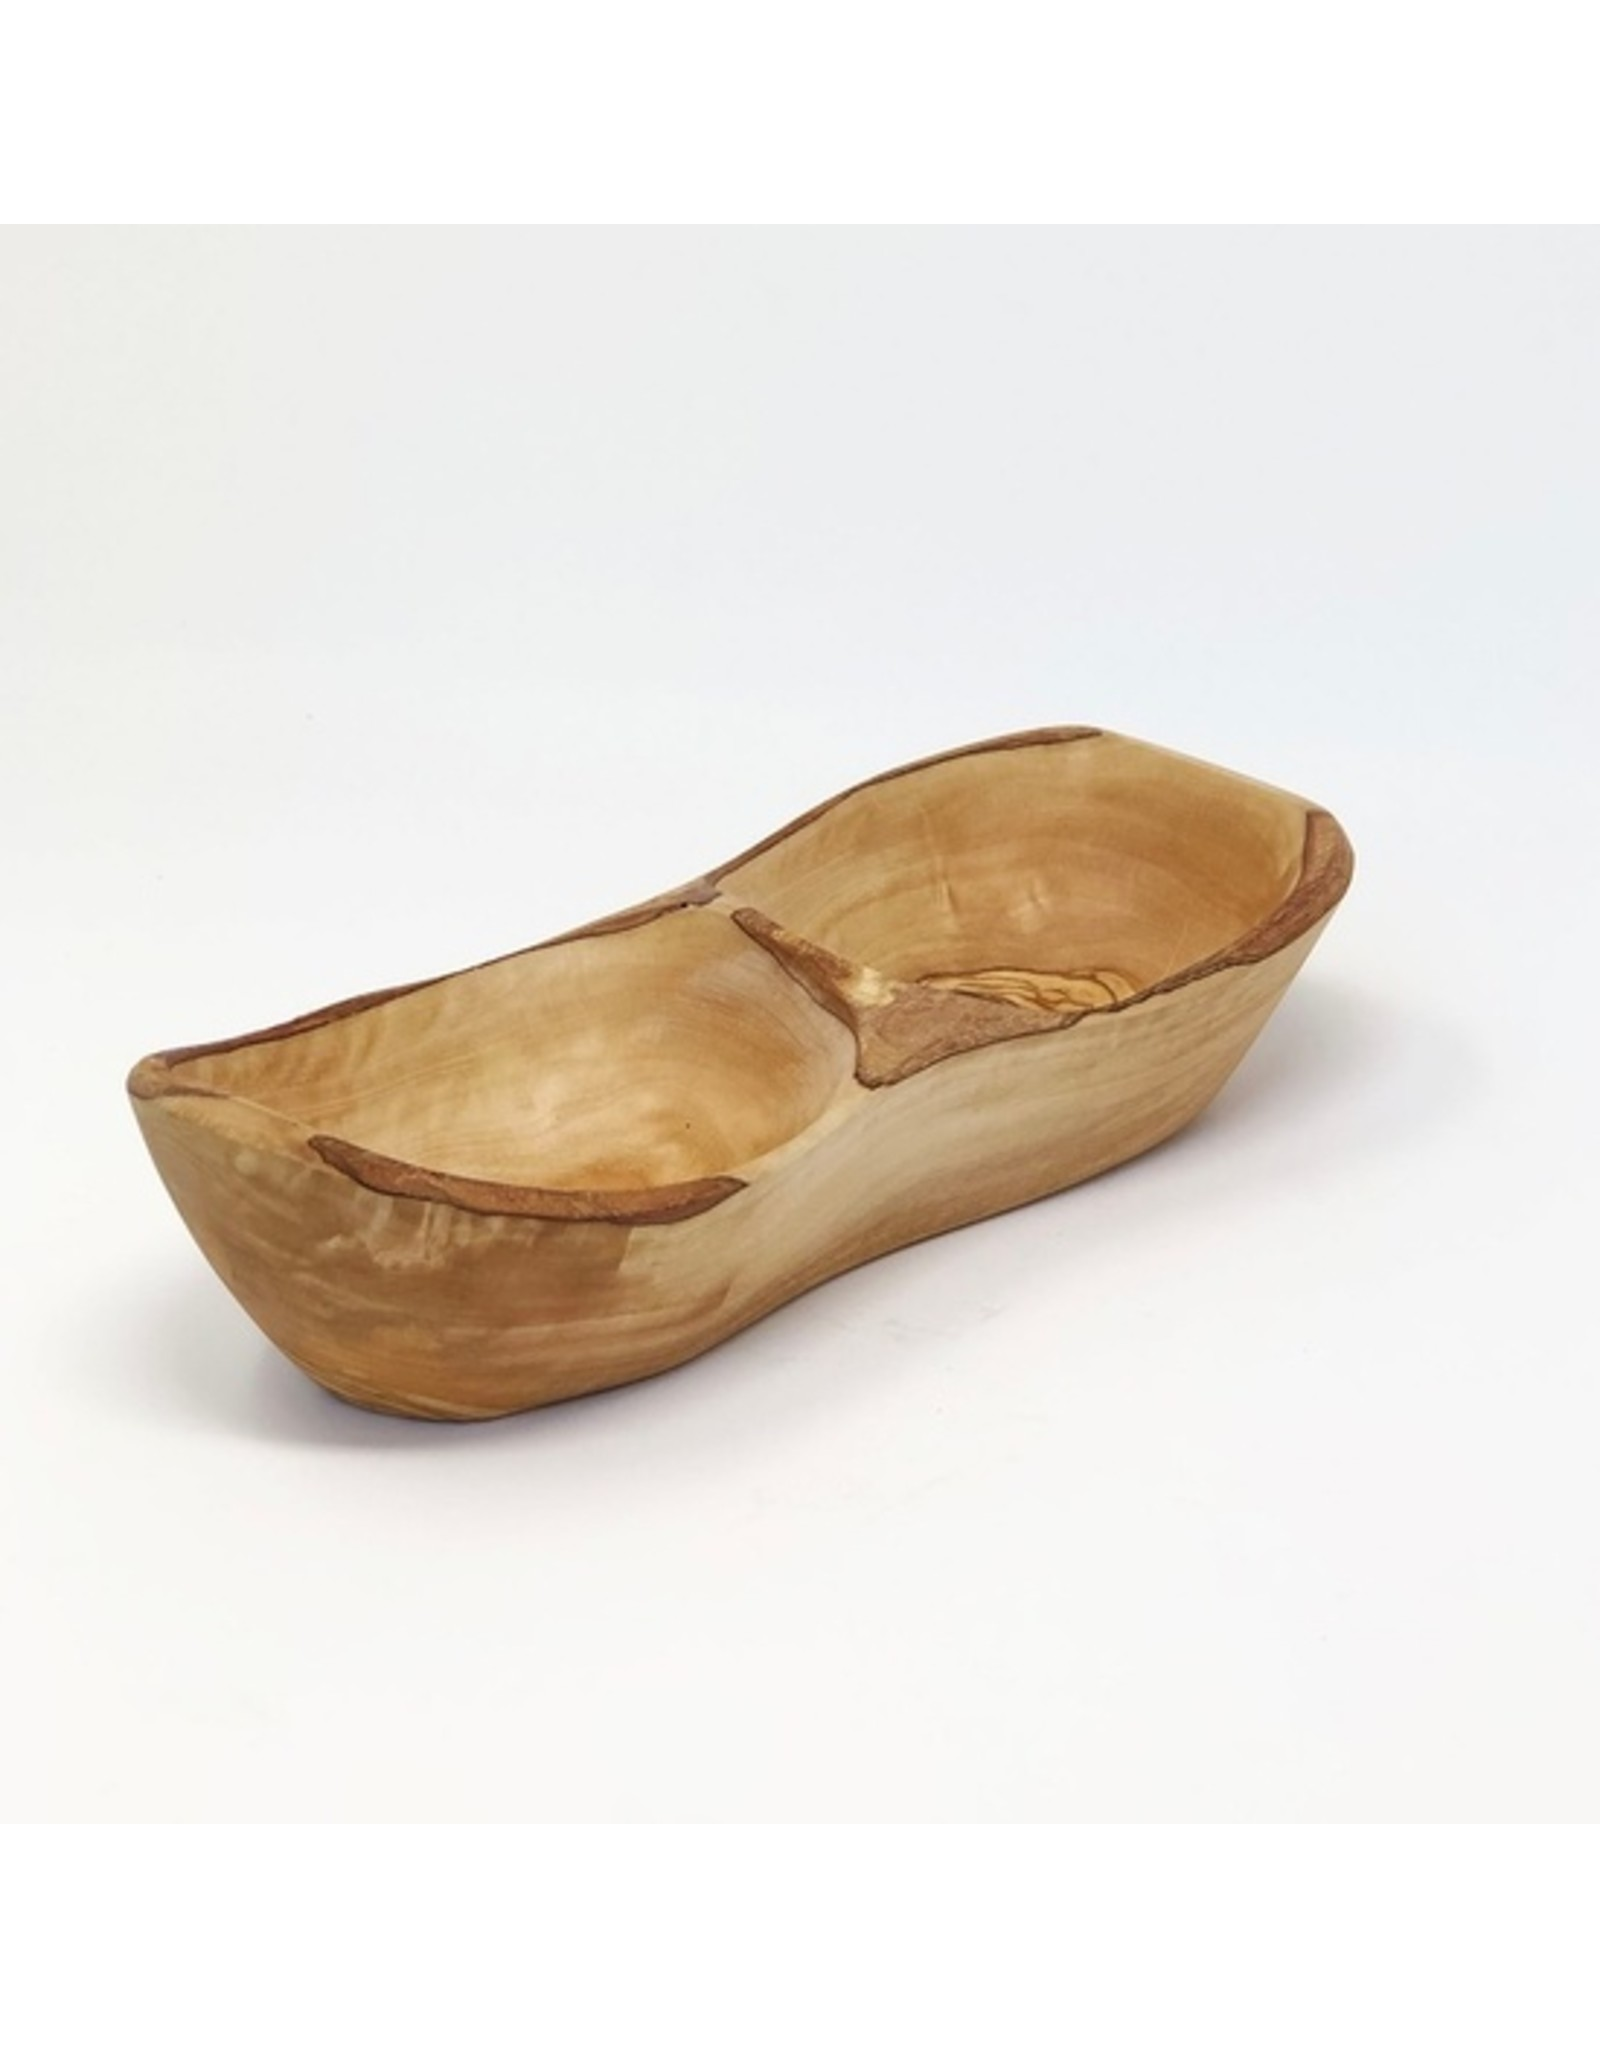 Olive Wood Rustic Appetizer Bowl - 2 sections